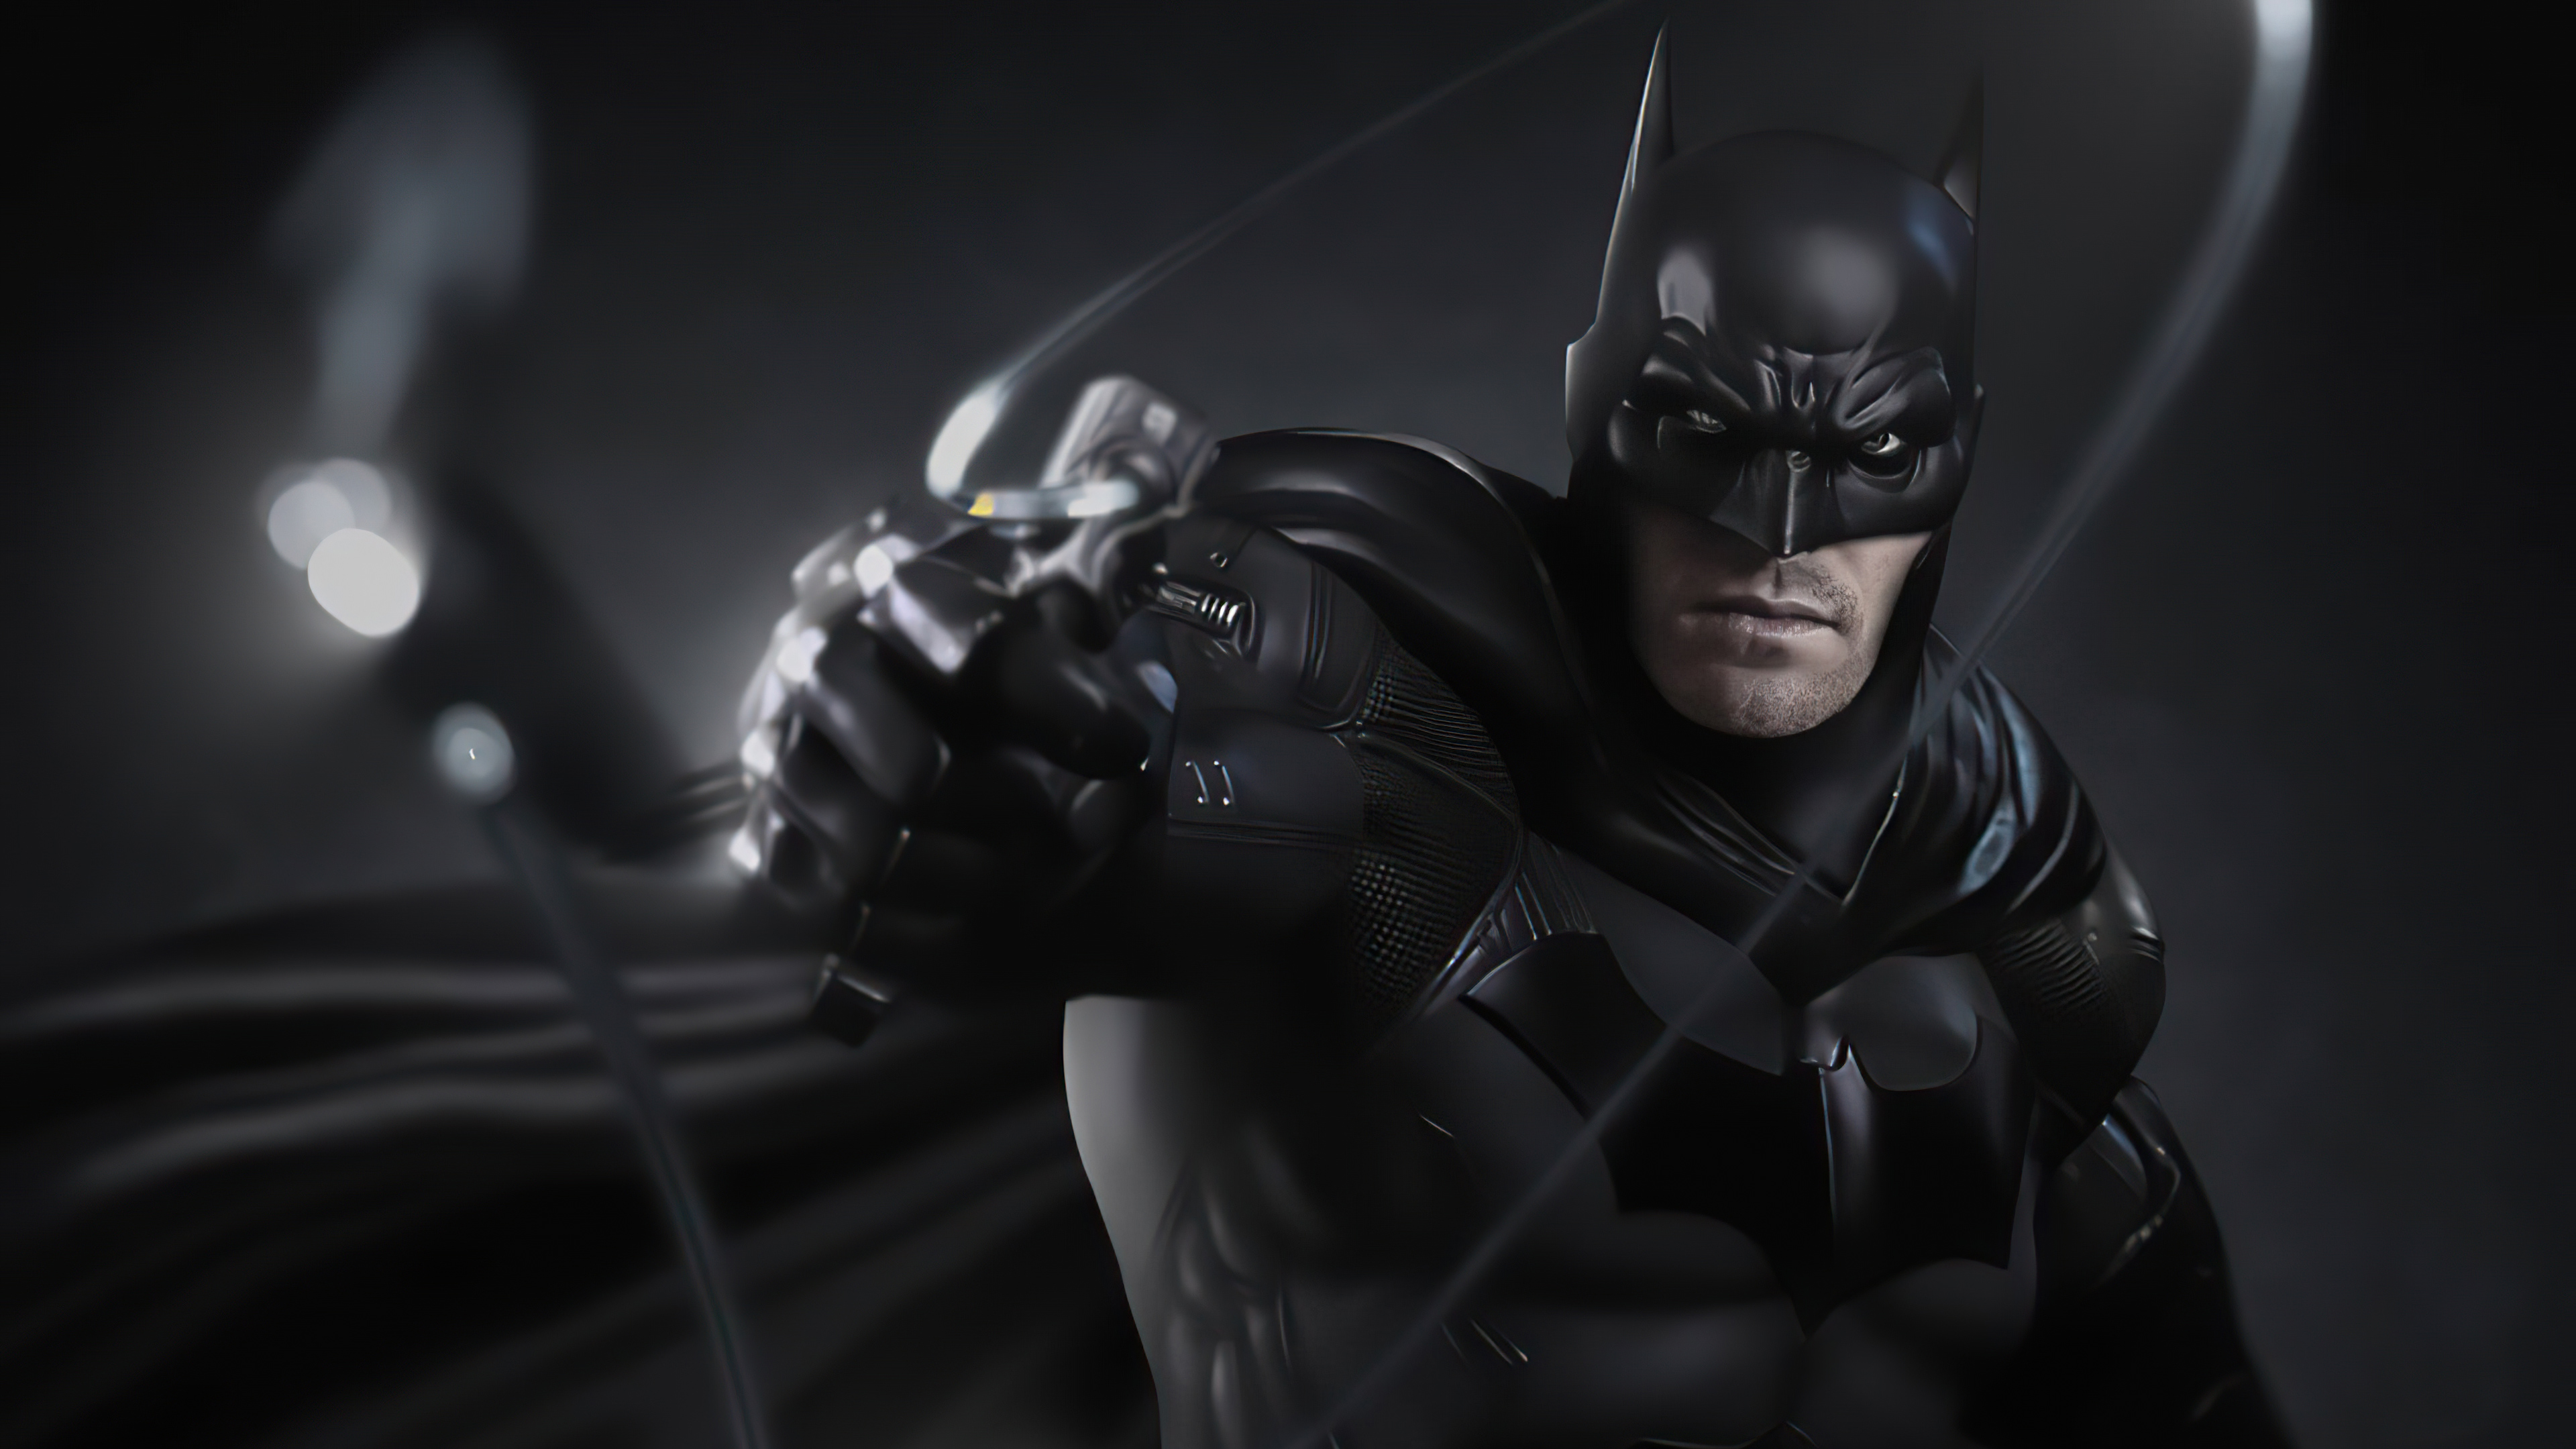 batman with a rope gun